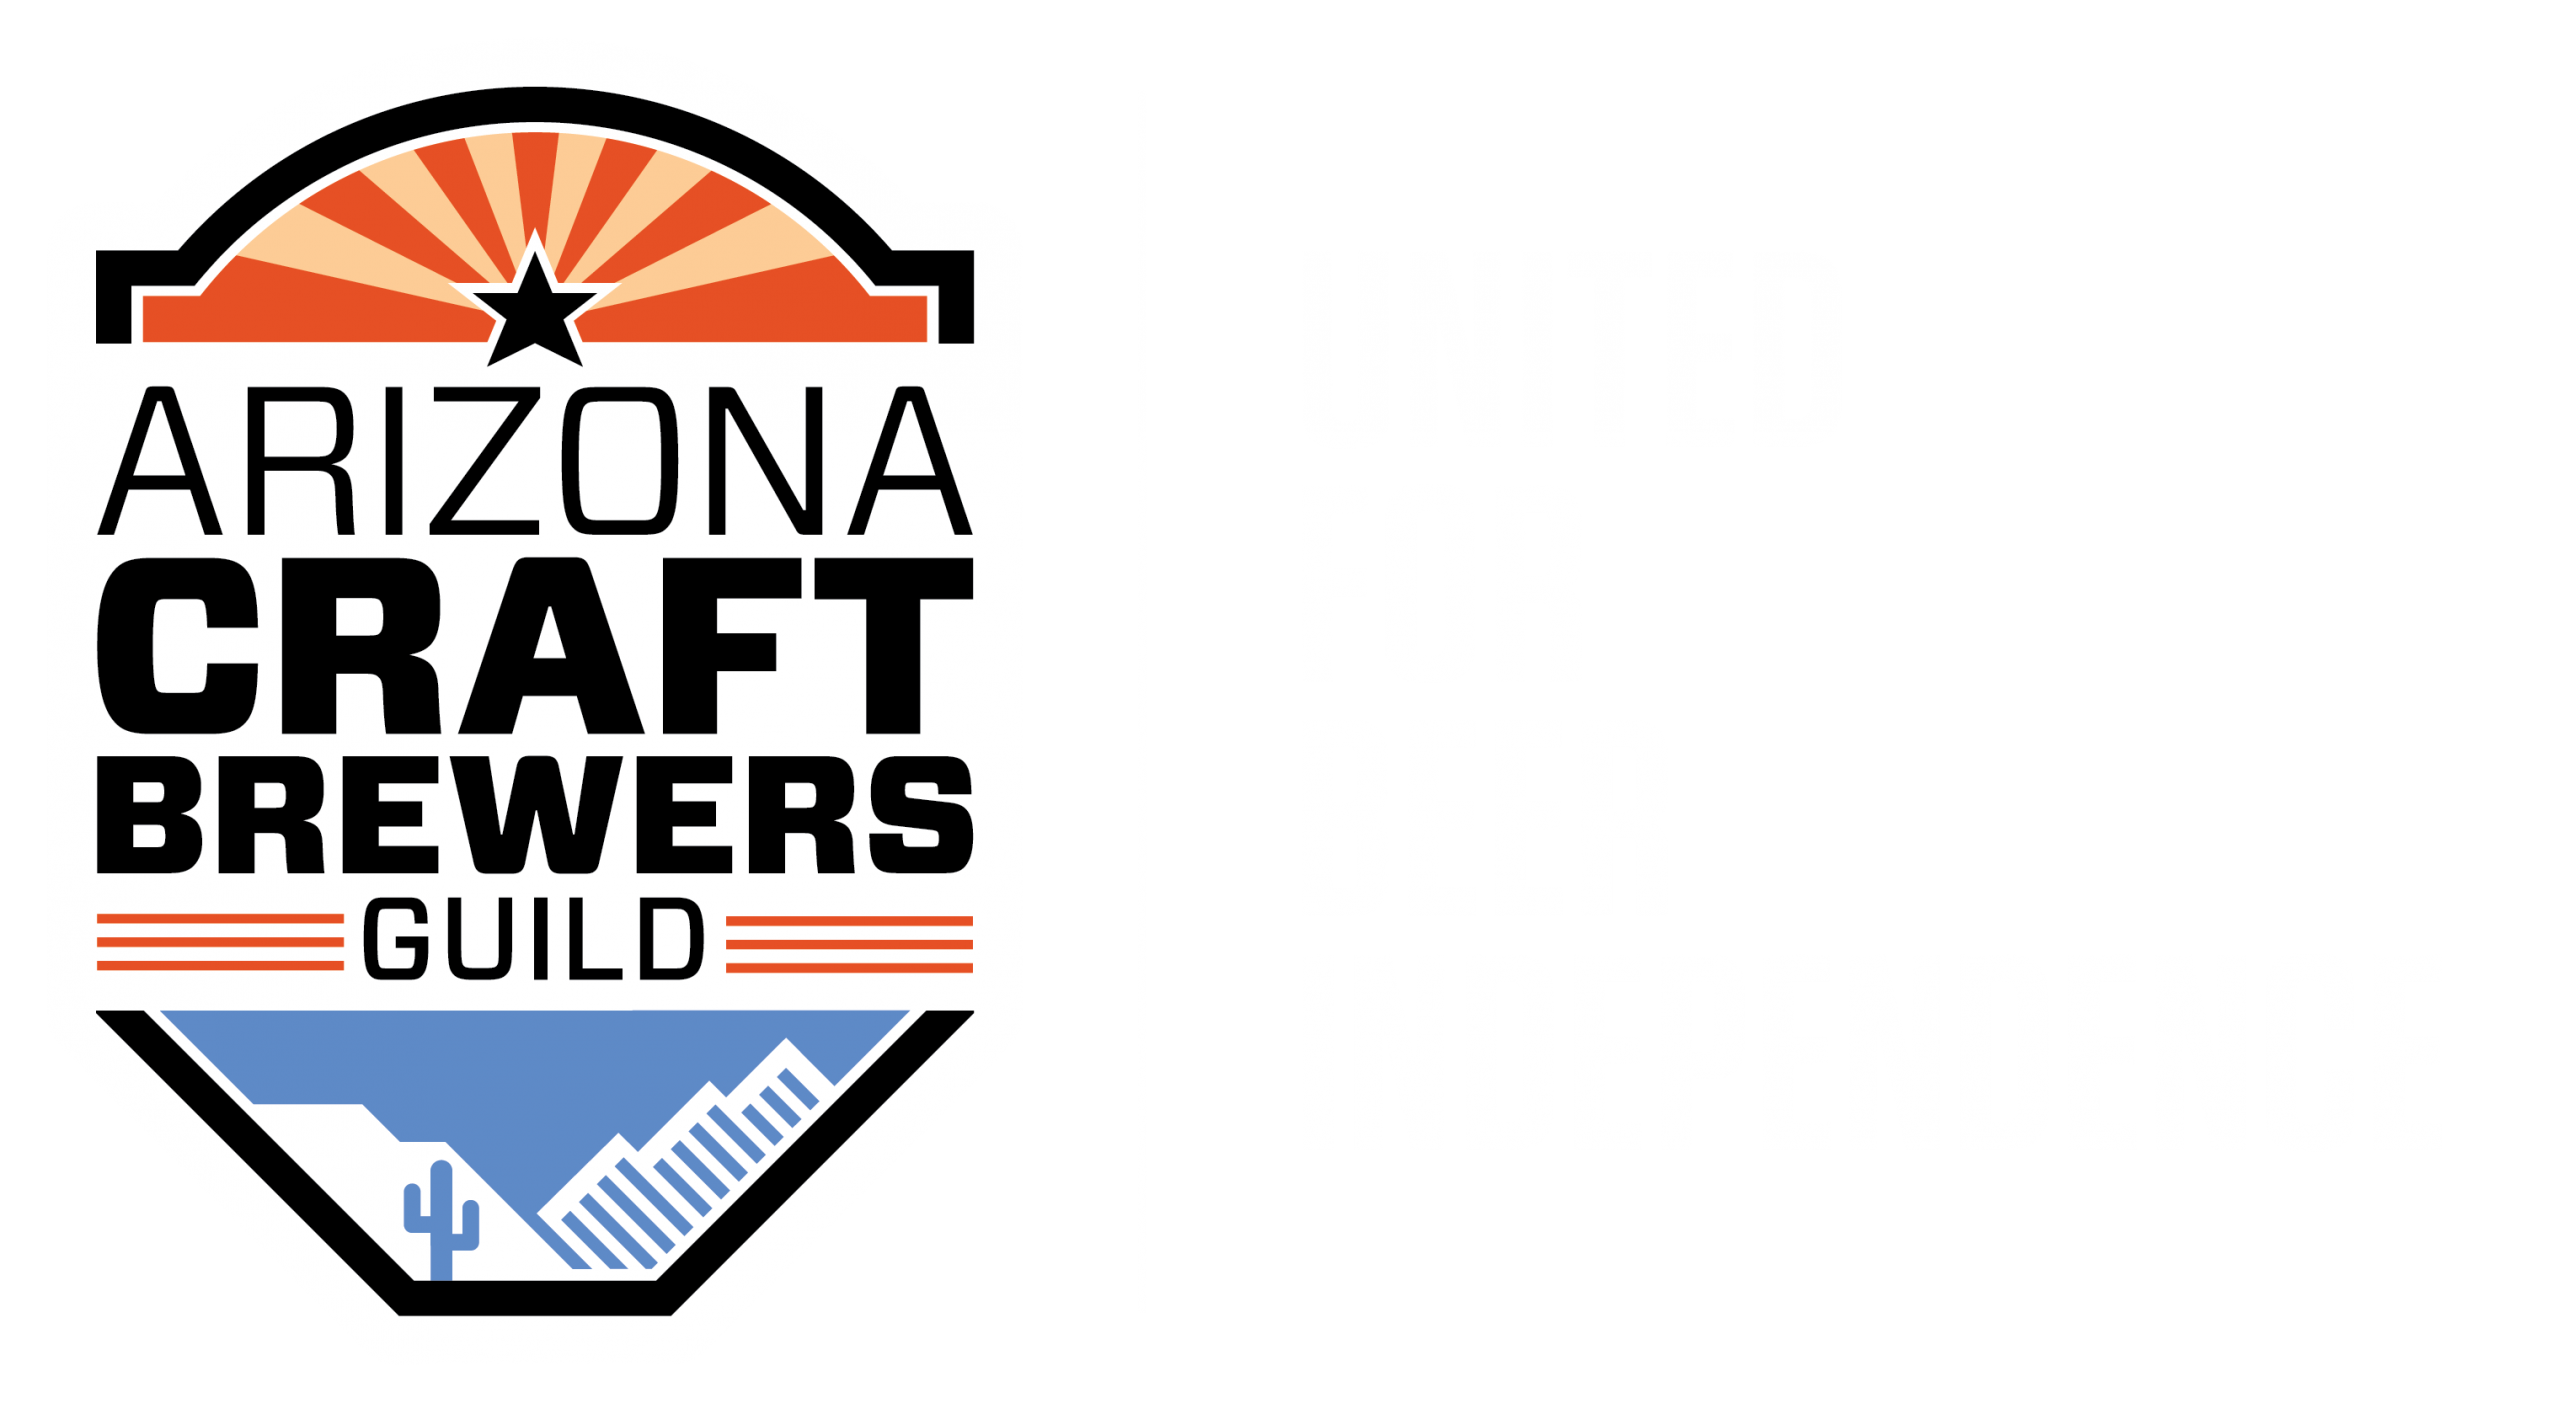 WHY IS ARIZONA BEER WEEK SO IMPORTANT? | Arizona Craft Brewers Guild